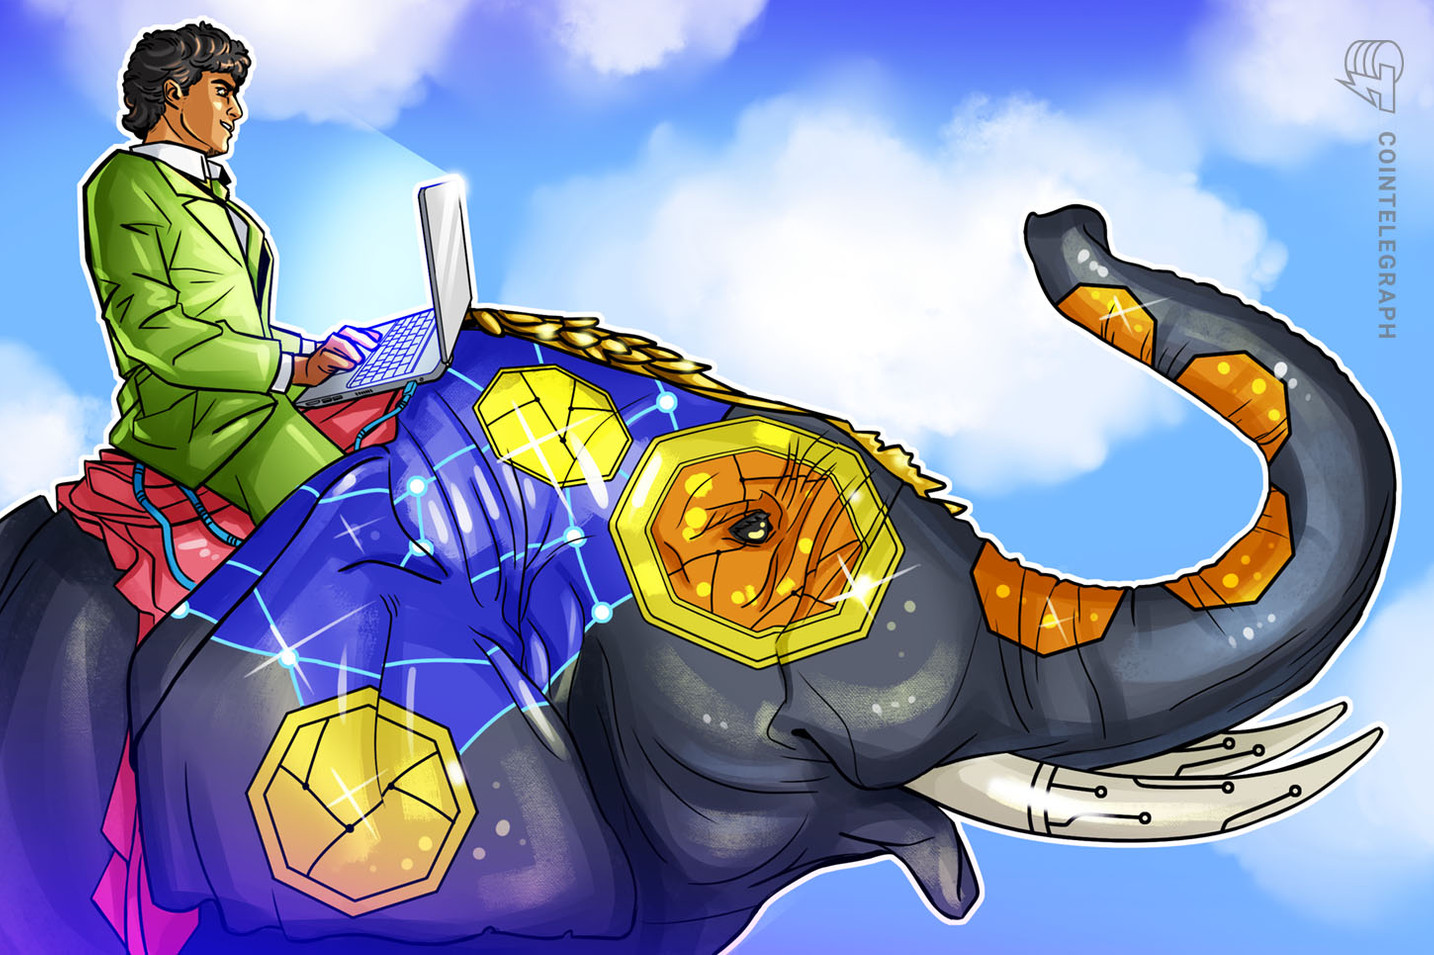 Reserve Bank of India 'exploring the possibility' of a digital currency